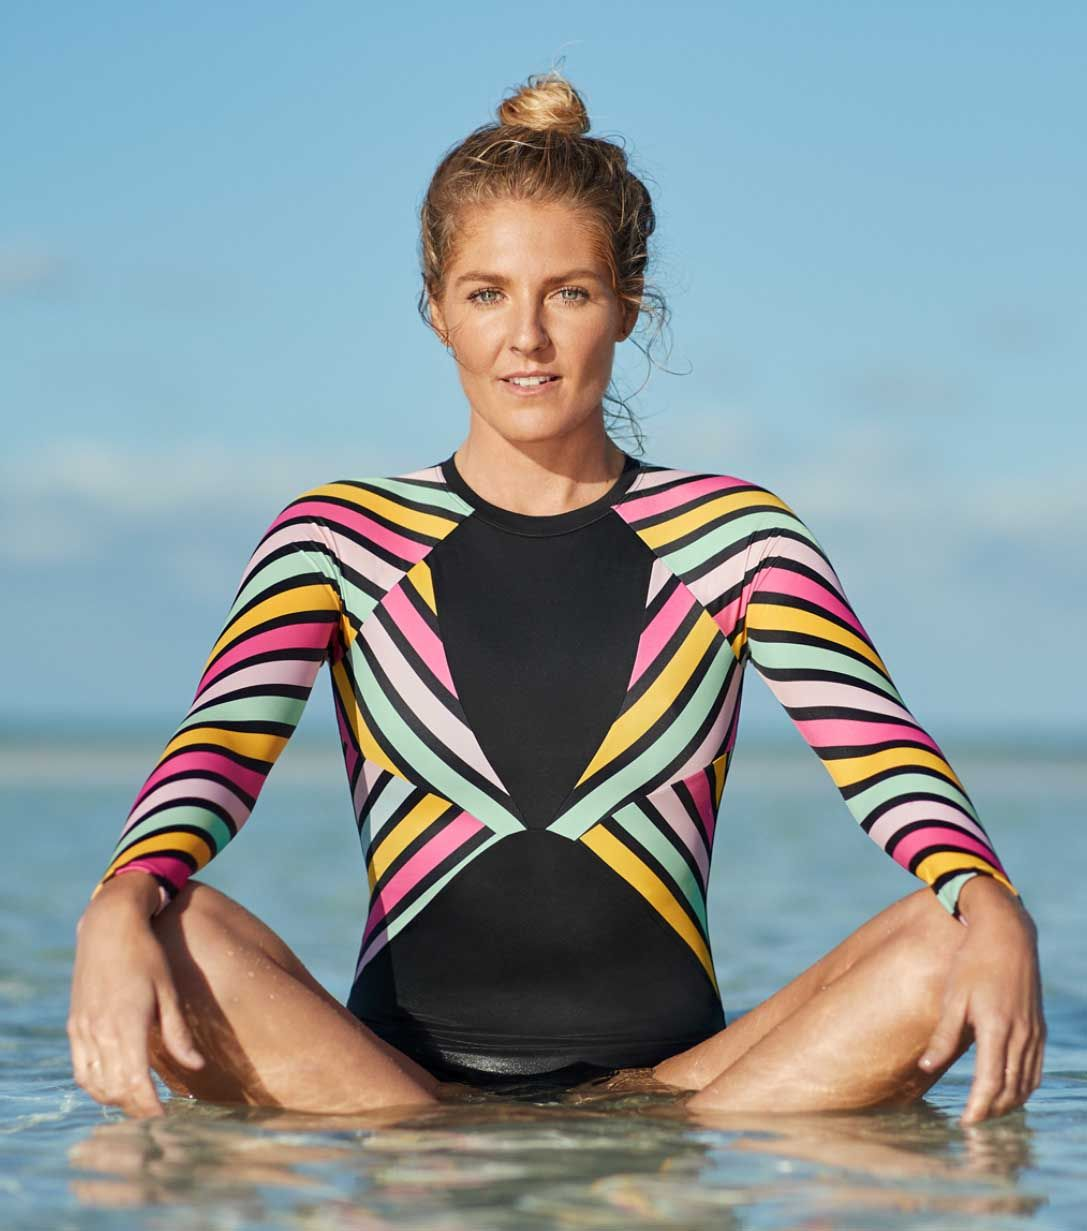 ff006095ad Pop Surf Collection: Wetsuits & Swimwear - Roxy